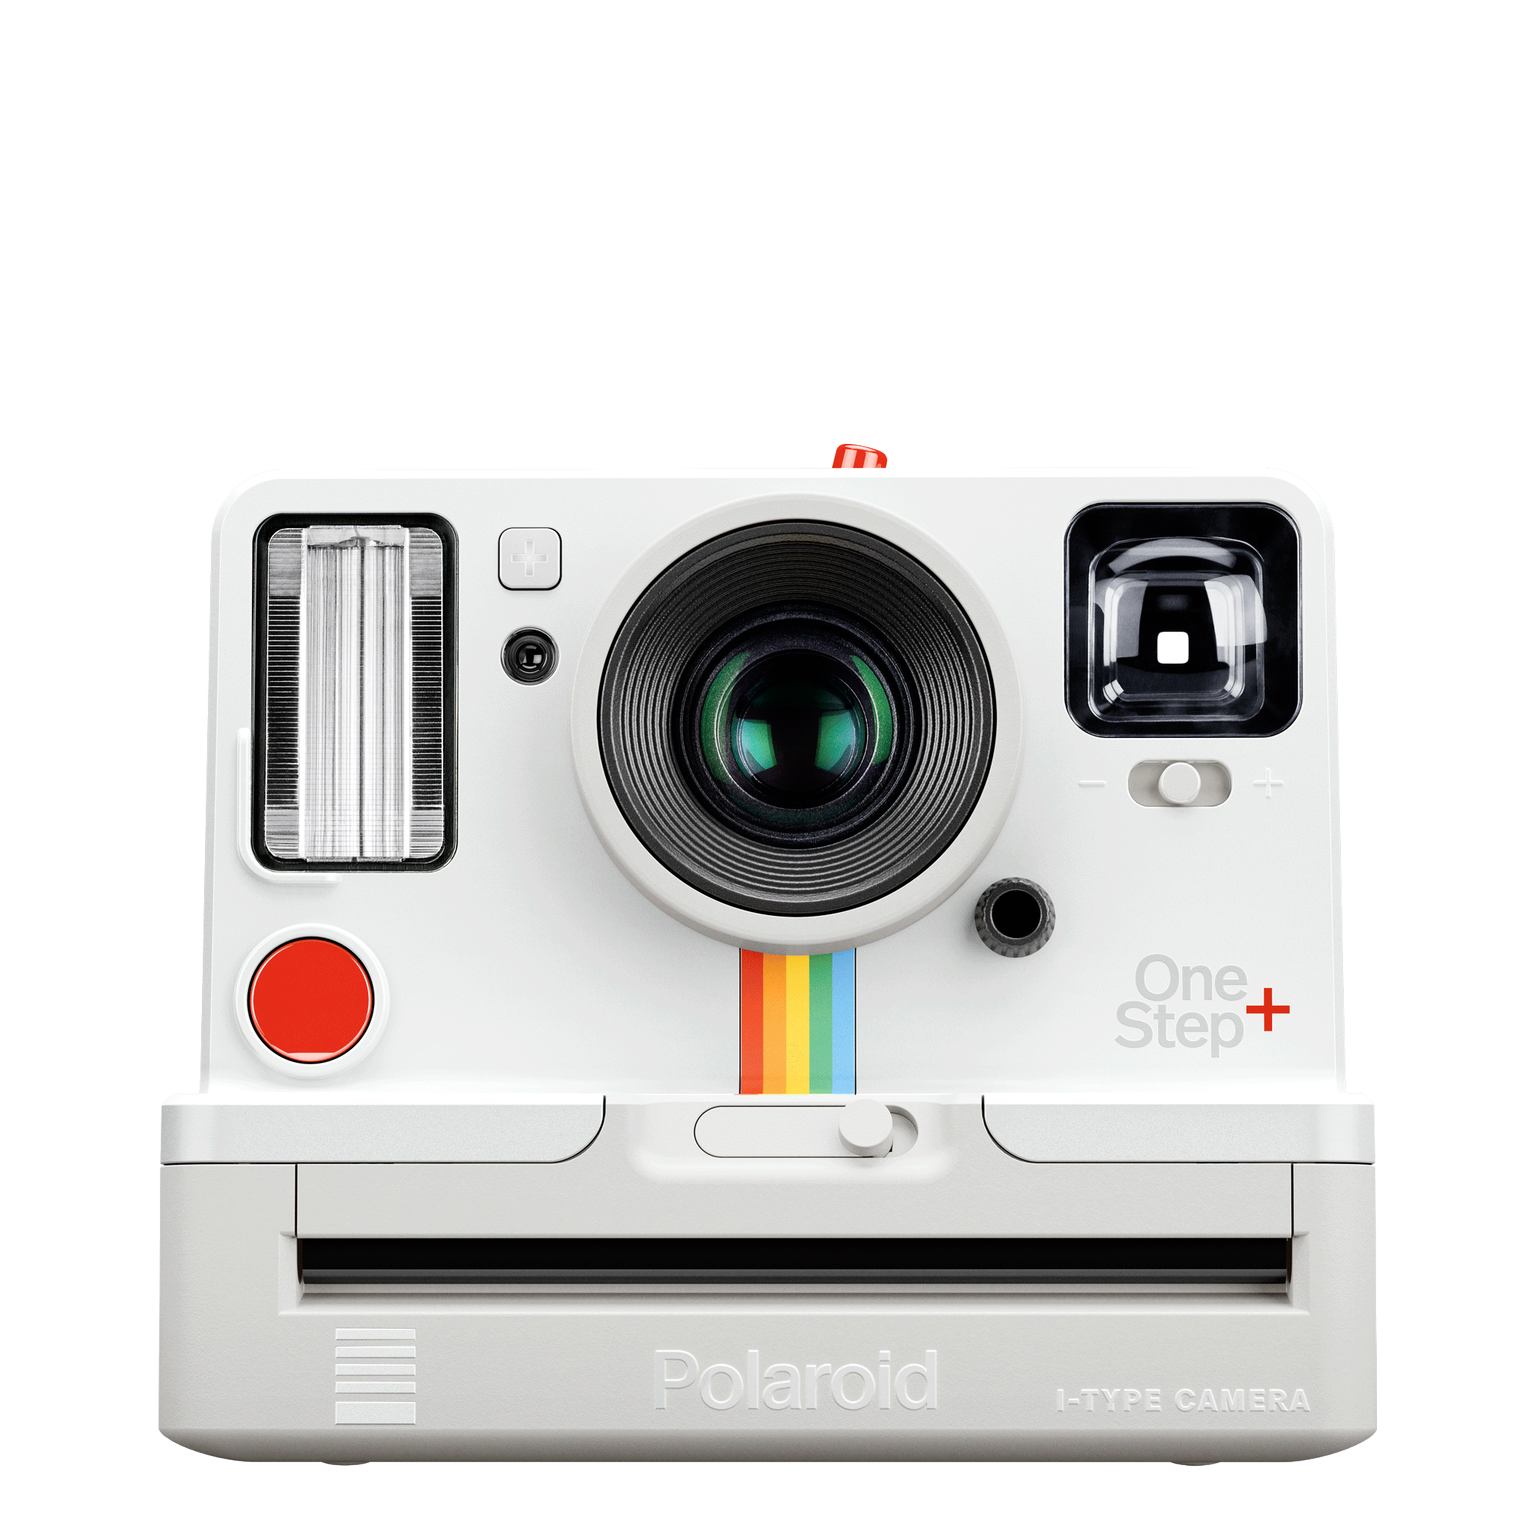 Polaroid Originals OneStep+, $119.99